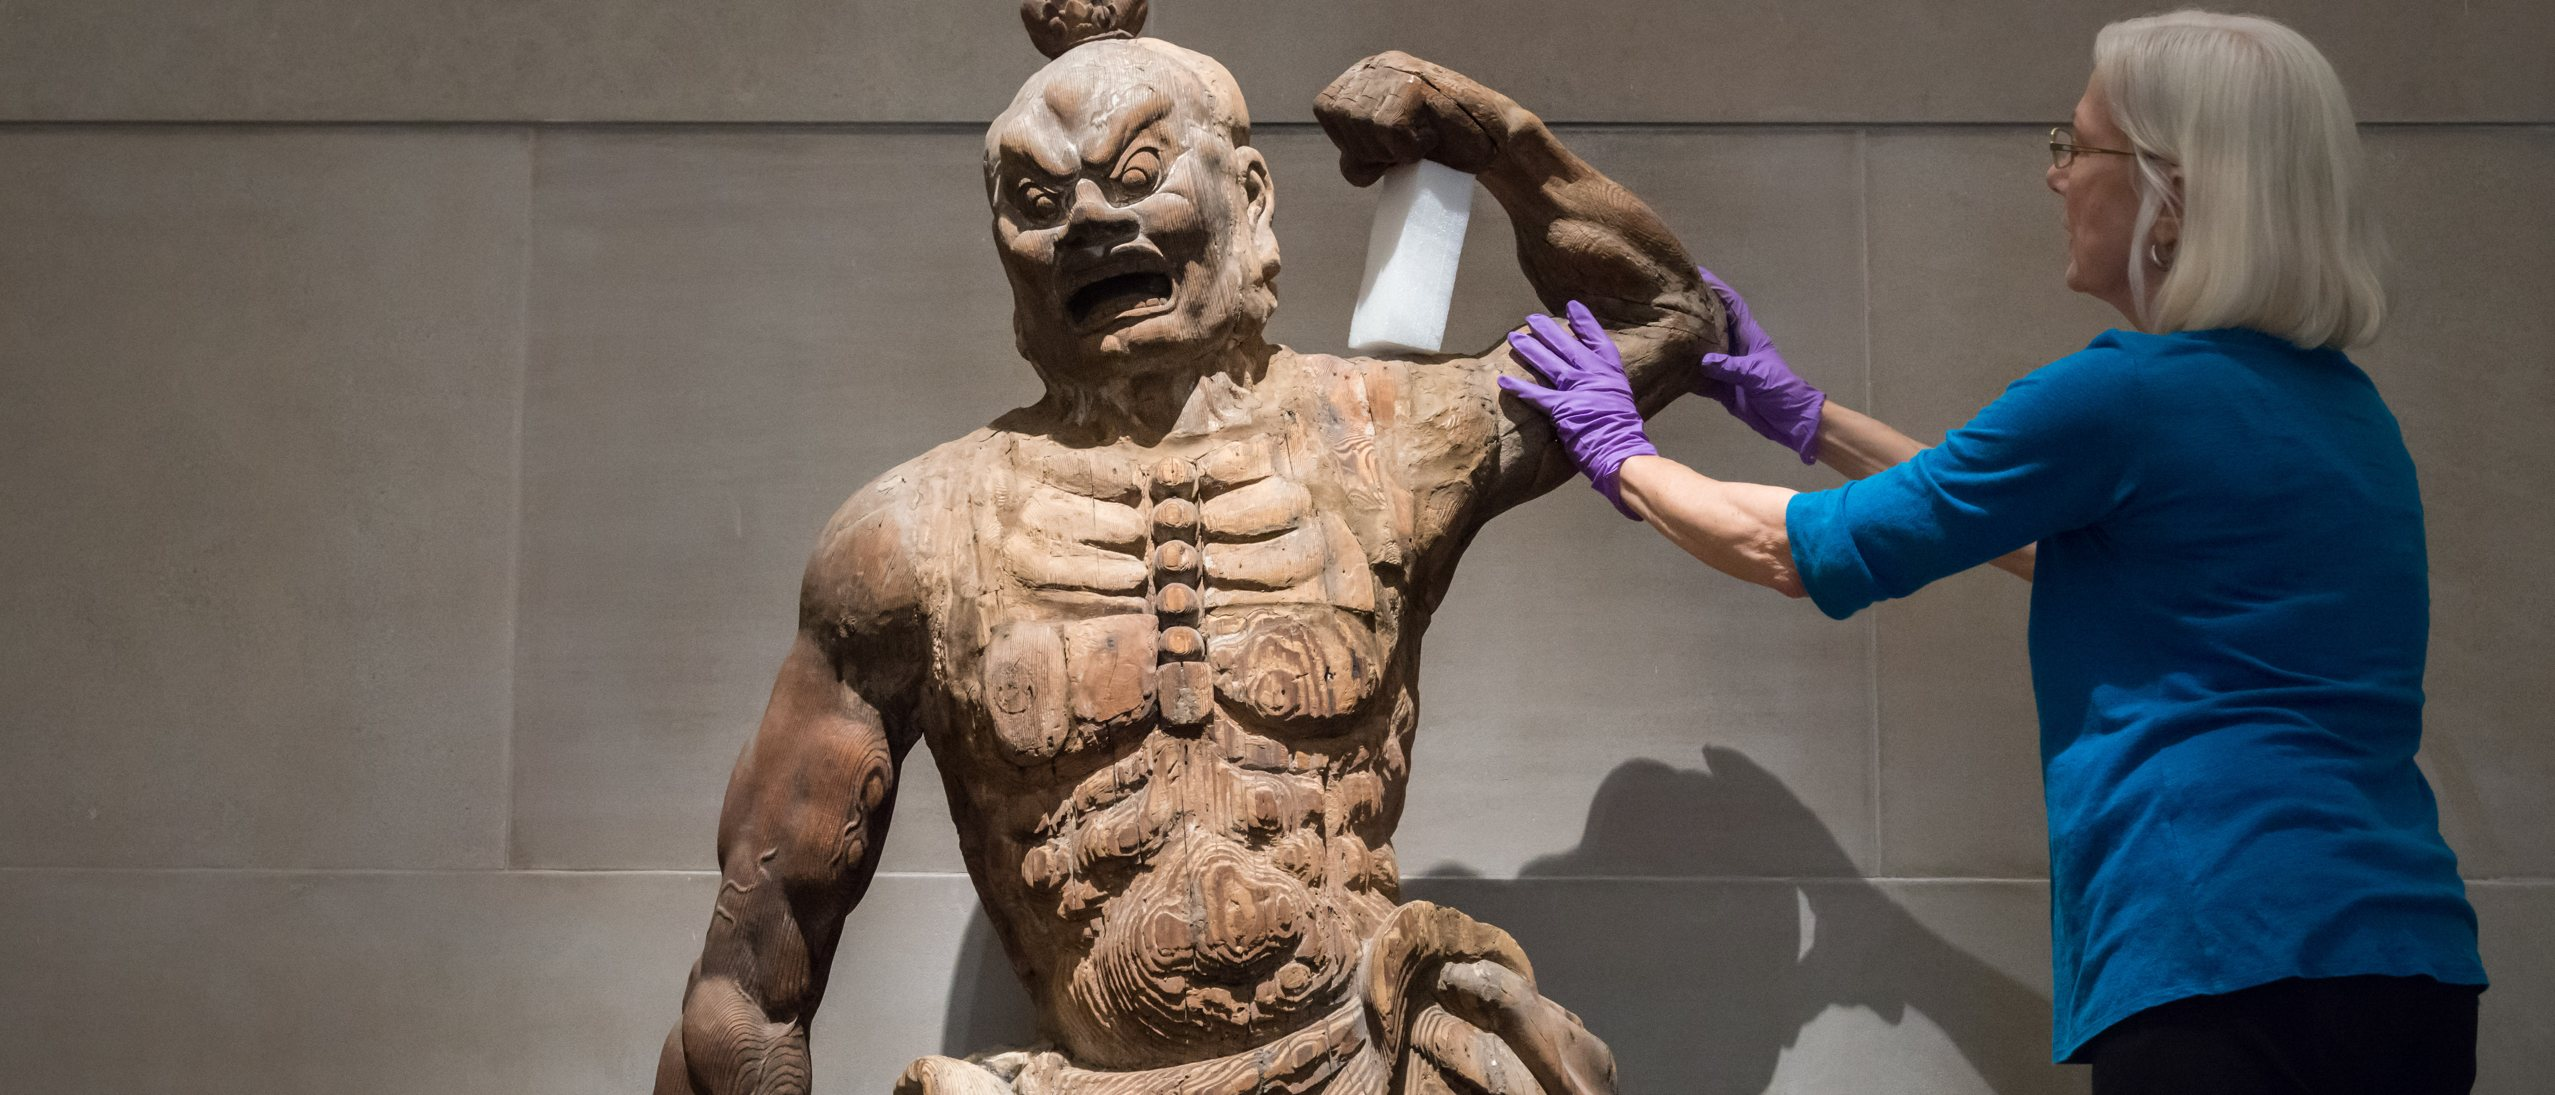 Conservator repairing the arm of a wooden guardian statue